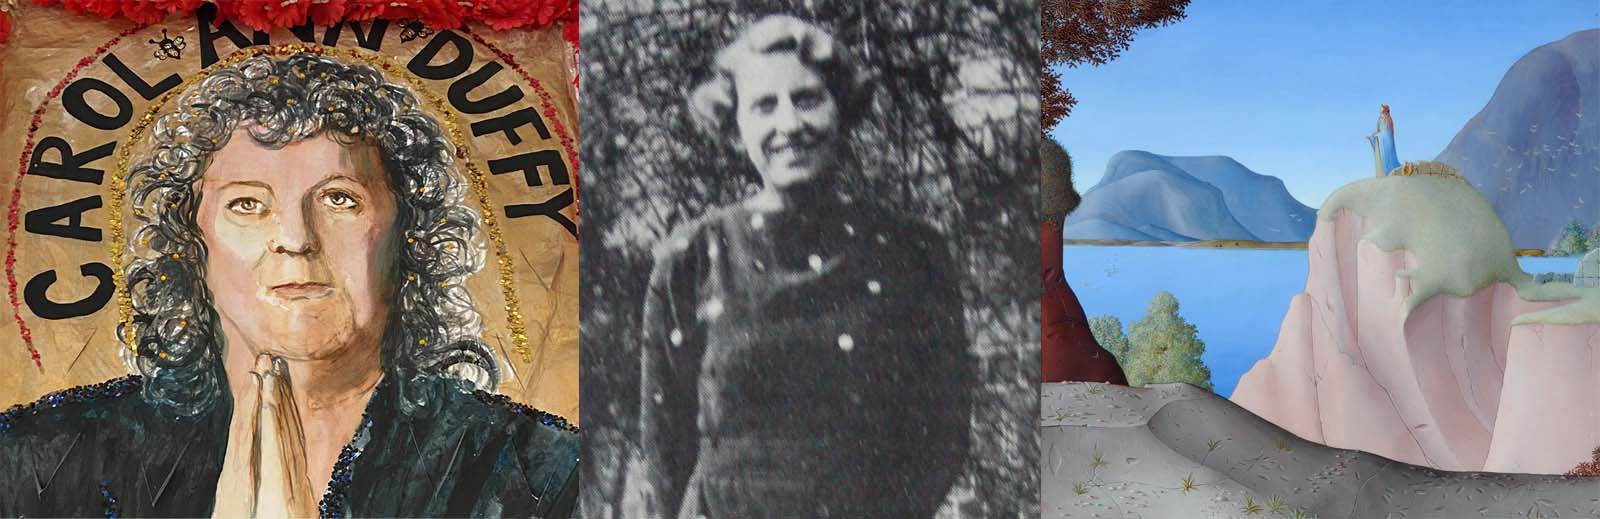 composite picture of a panting of Carol Ann Duffy, a photo of Winifred Holtby and a painting of Sappho